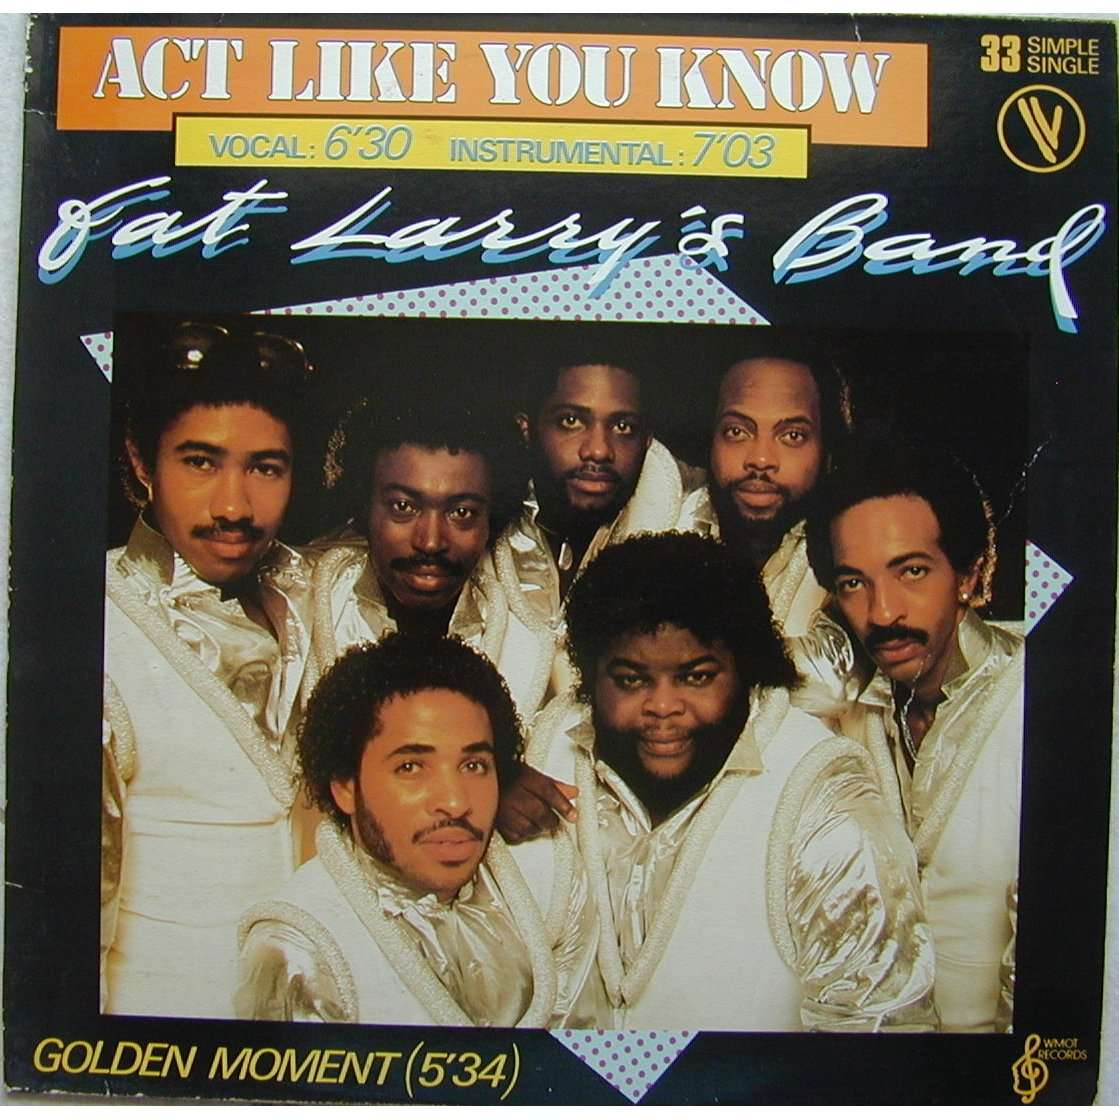 act like you know by FAT LARRYS BAND, 12inch with speed06